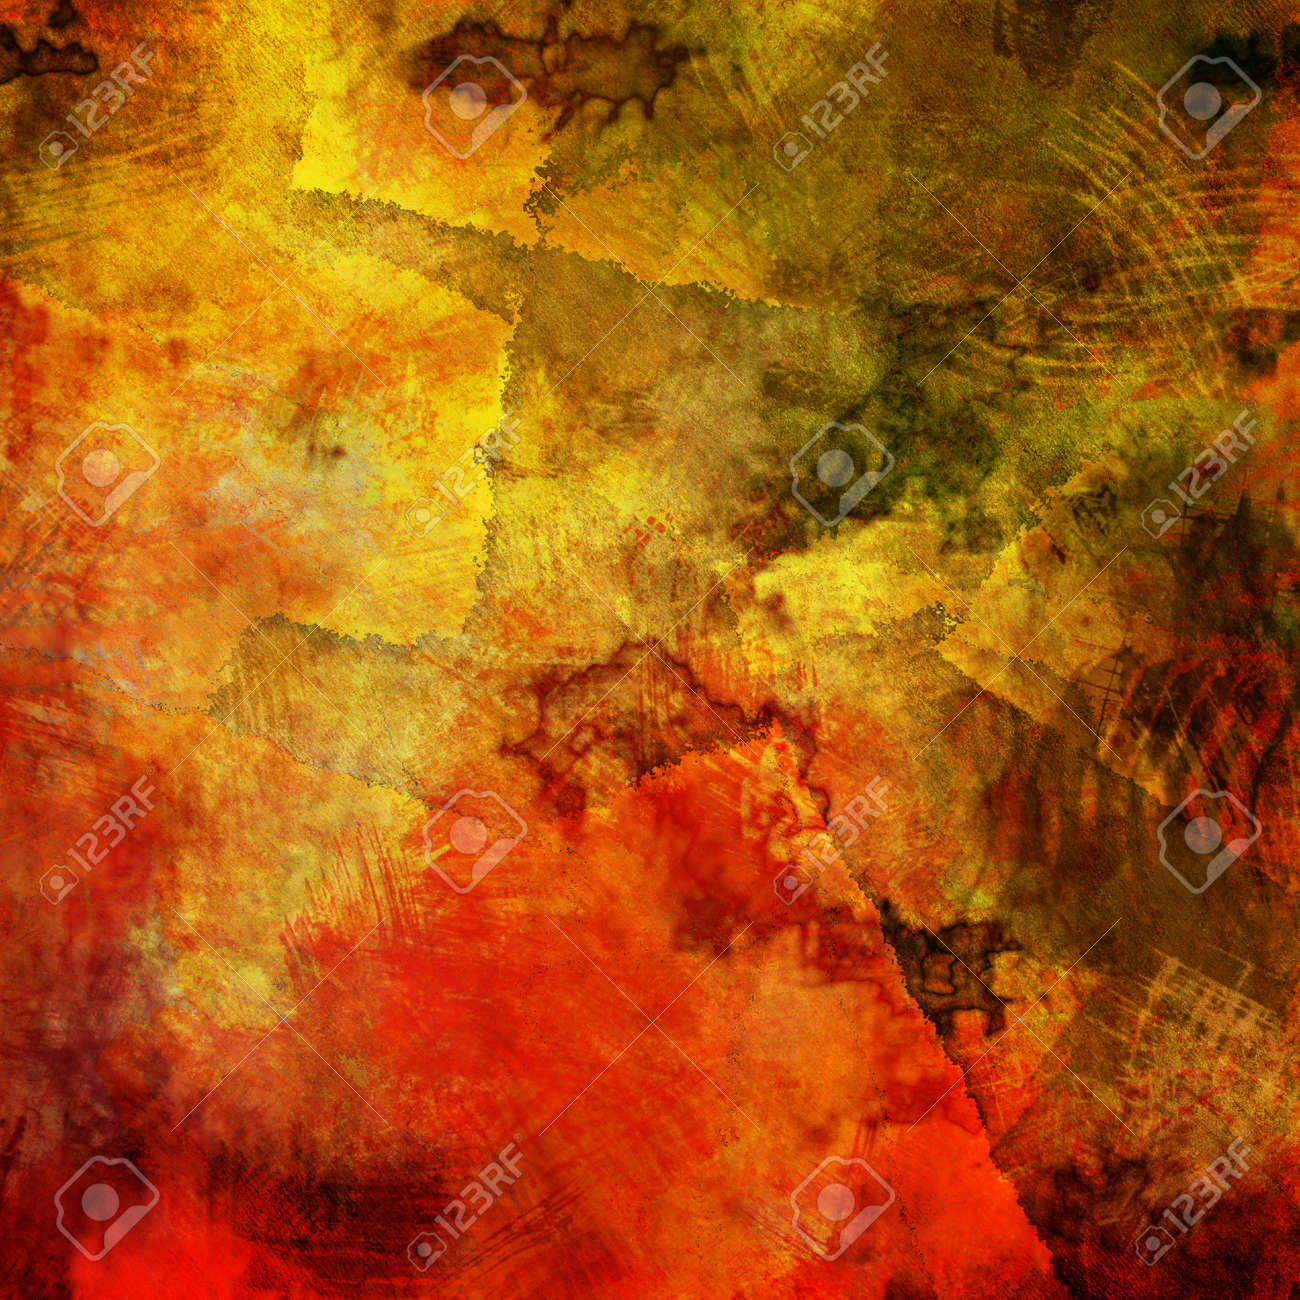 Art Abstract Acrylic And Pencil Background In Red Yellow Brown